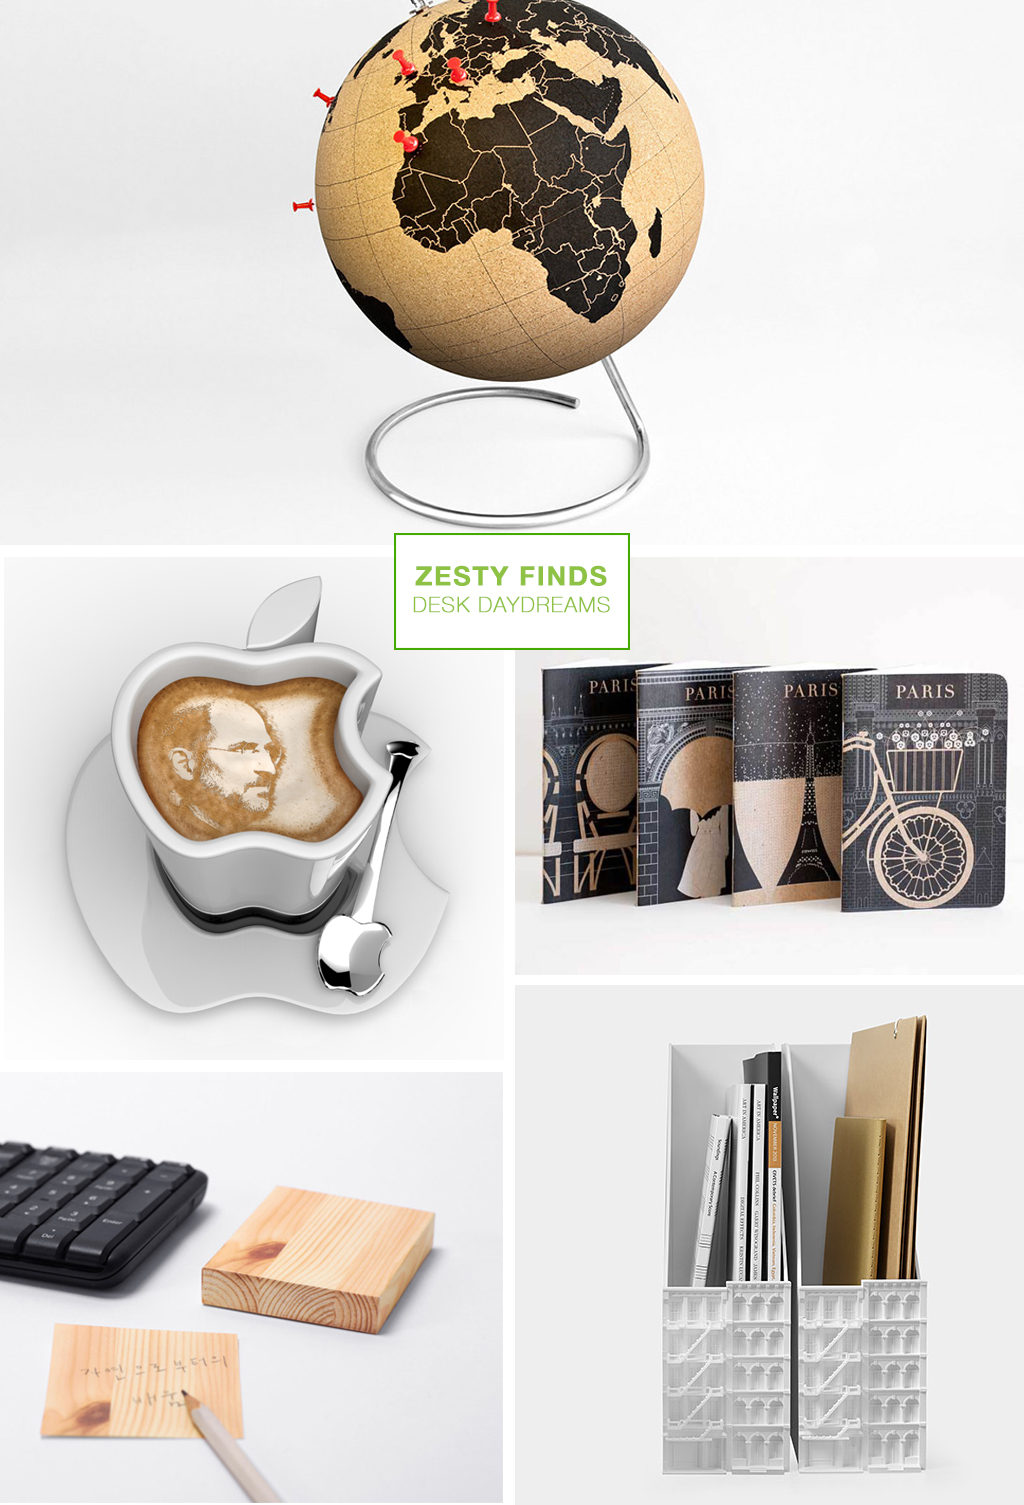 zesty finds // desk daydreams